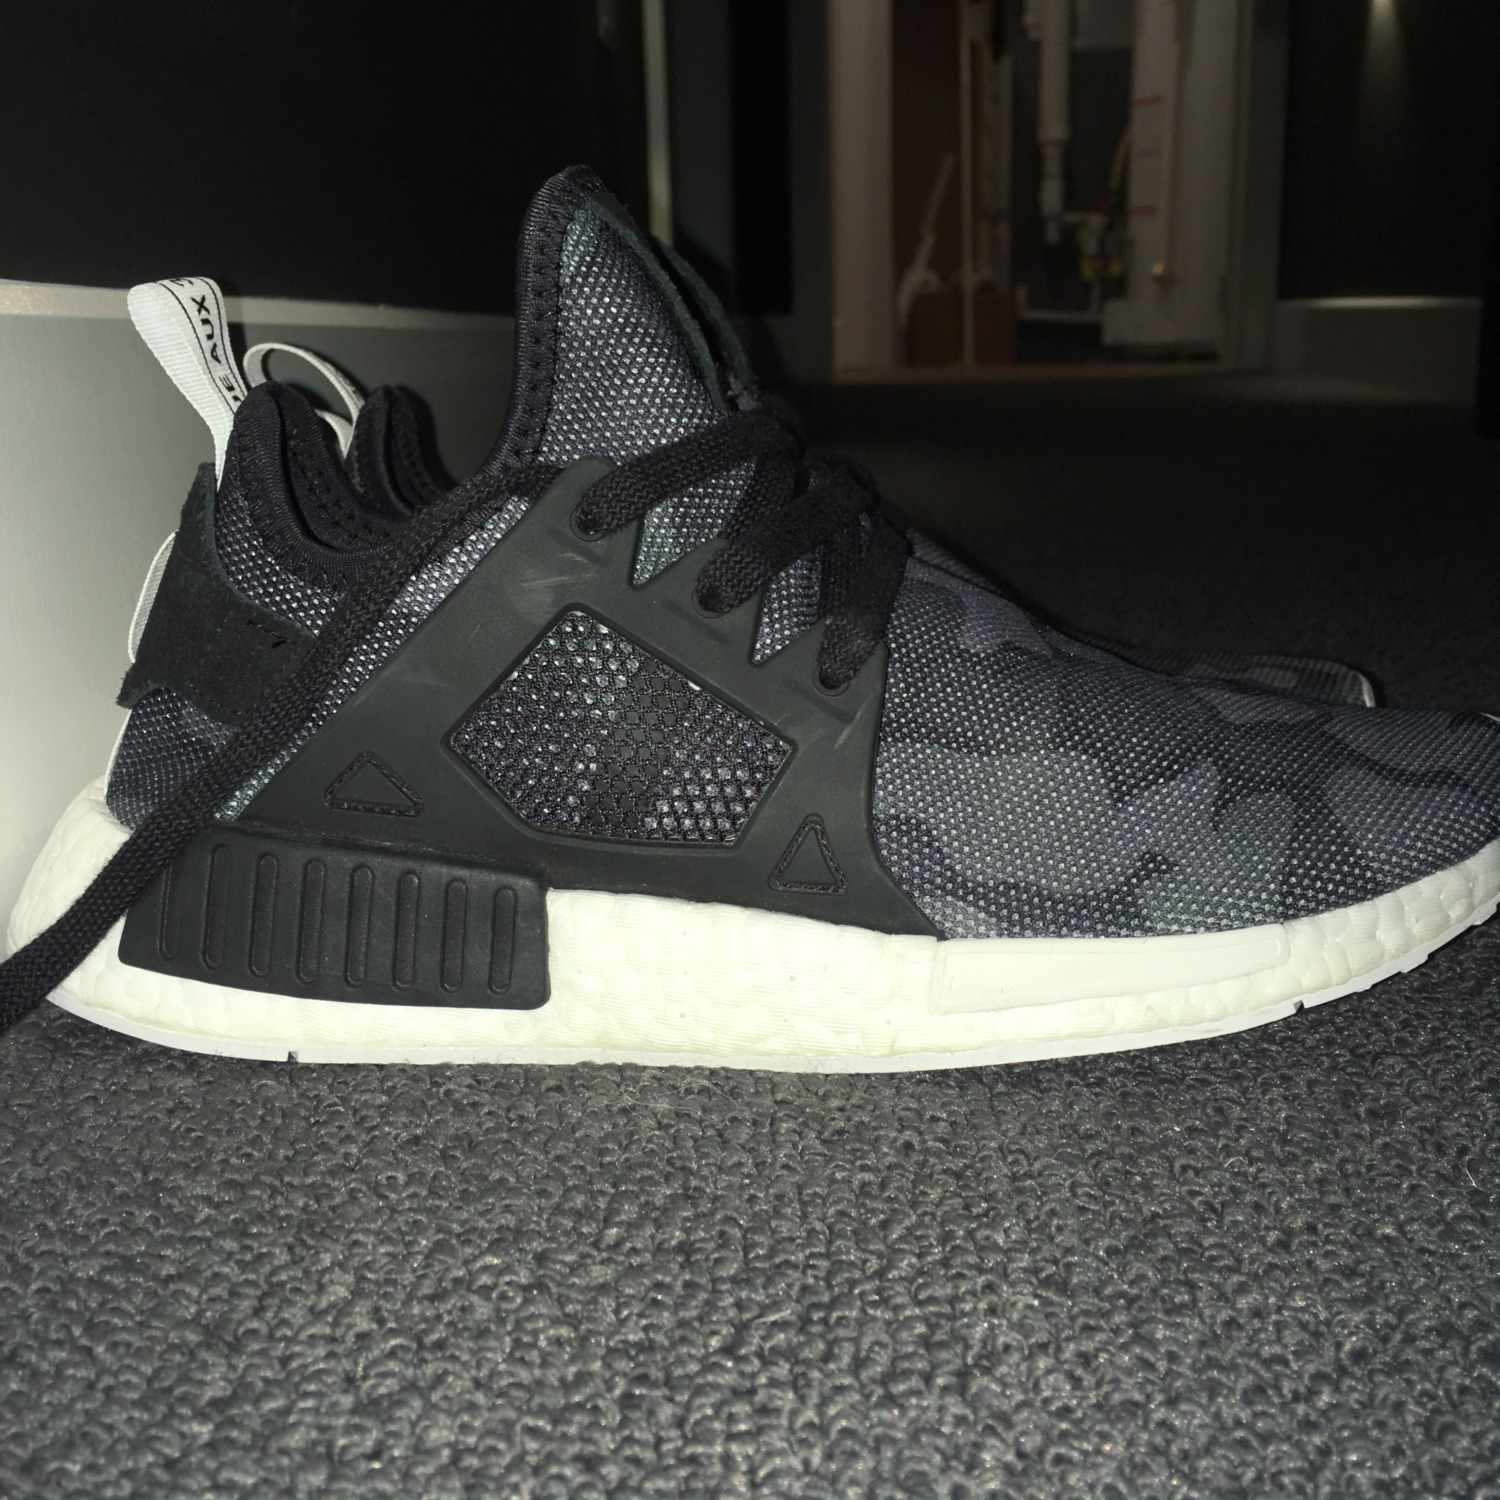 brand new ed0cc 5cd12 Nmd Xr1 Duck Camo (Black) Can Price Negotiable